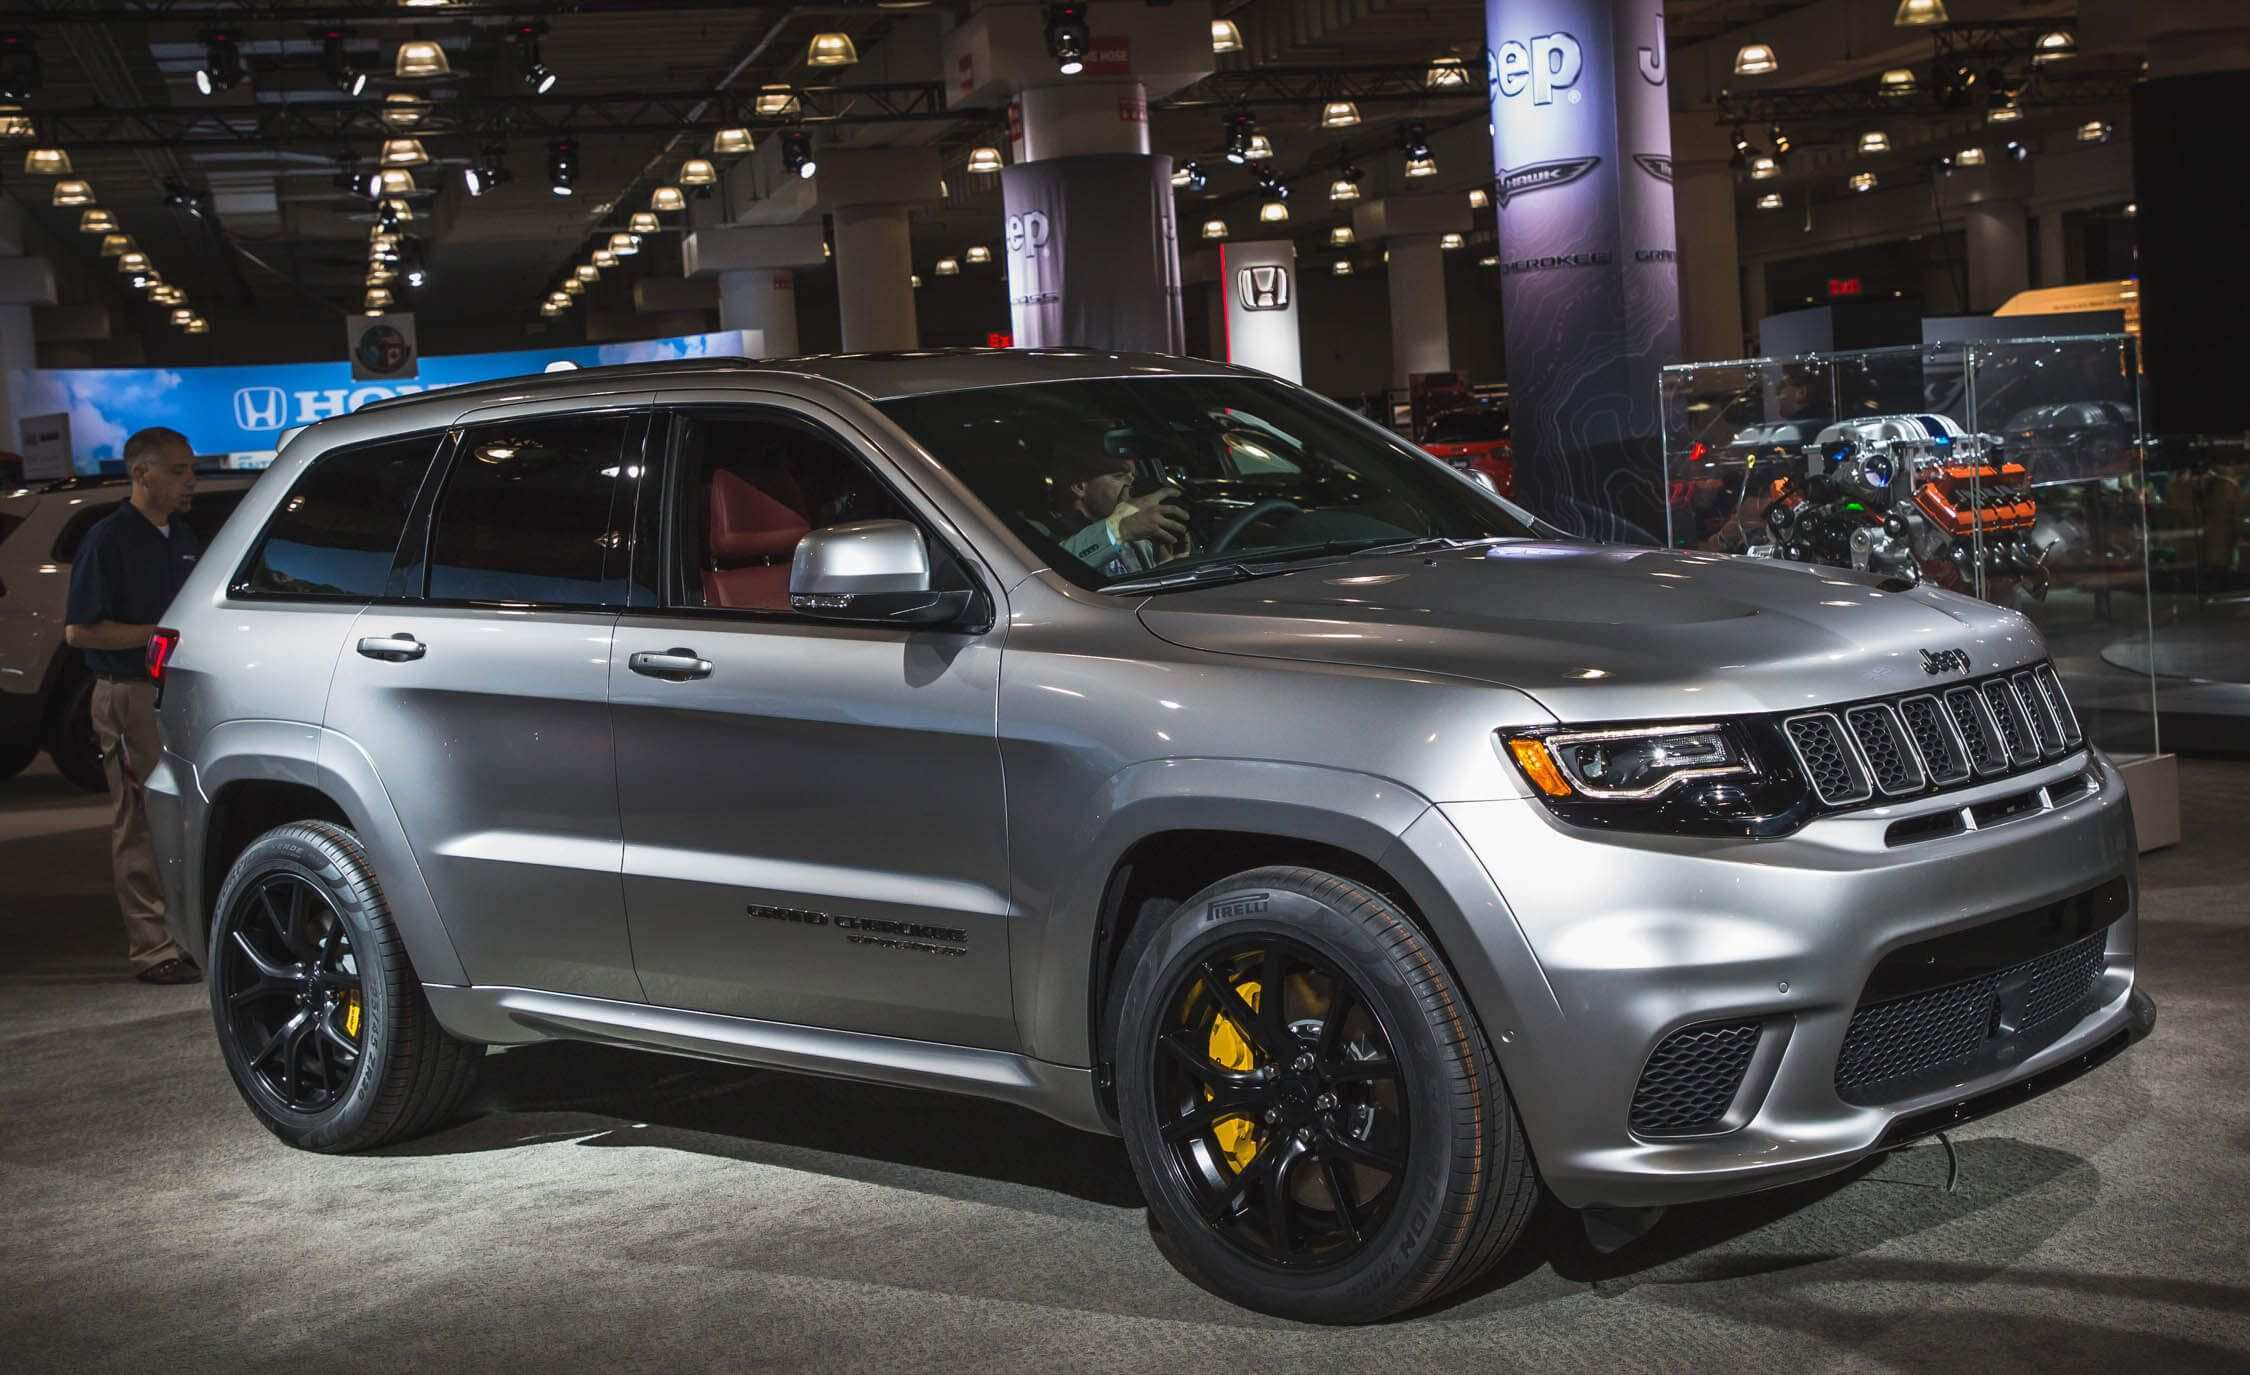 90 The Best 2020 Jeep Grand Cherokee Diesel Prices